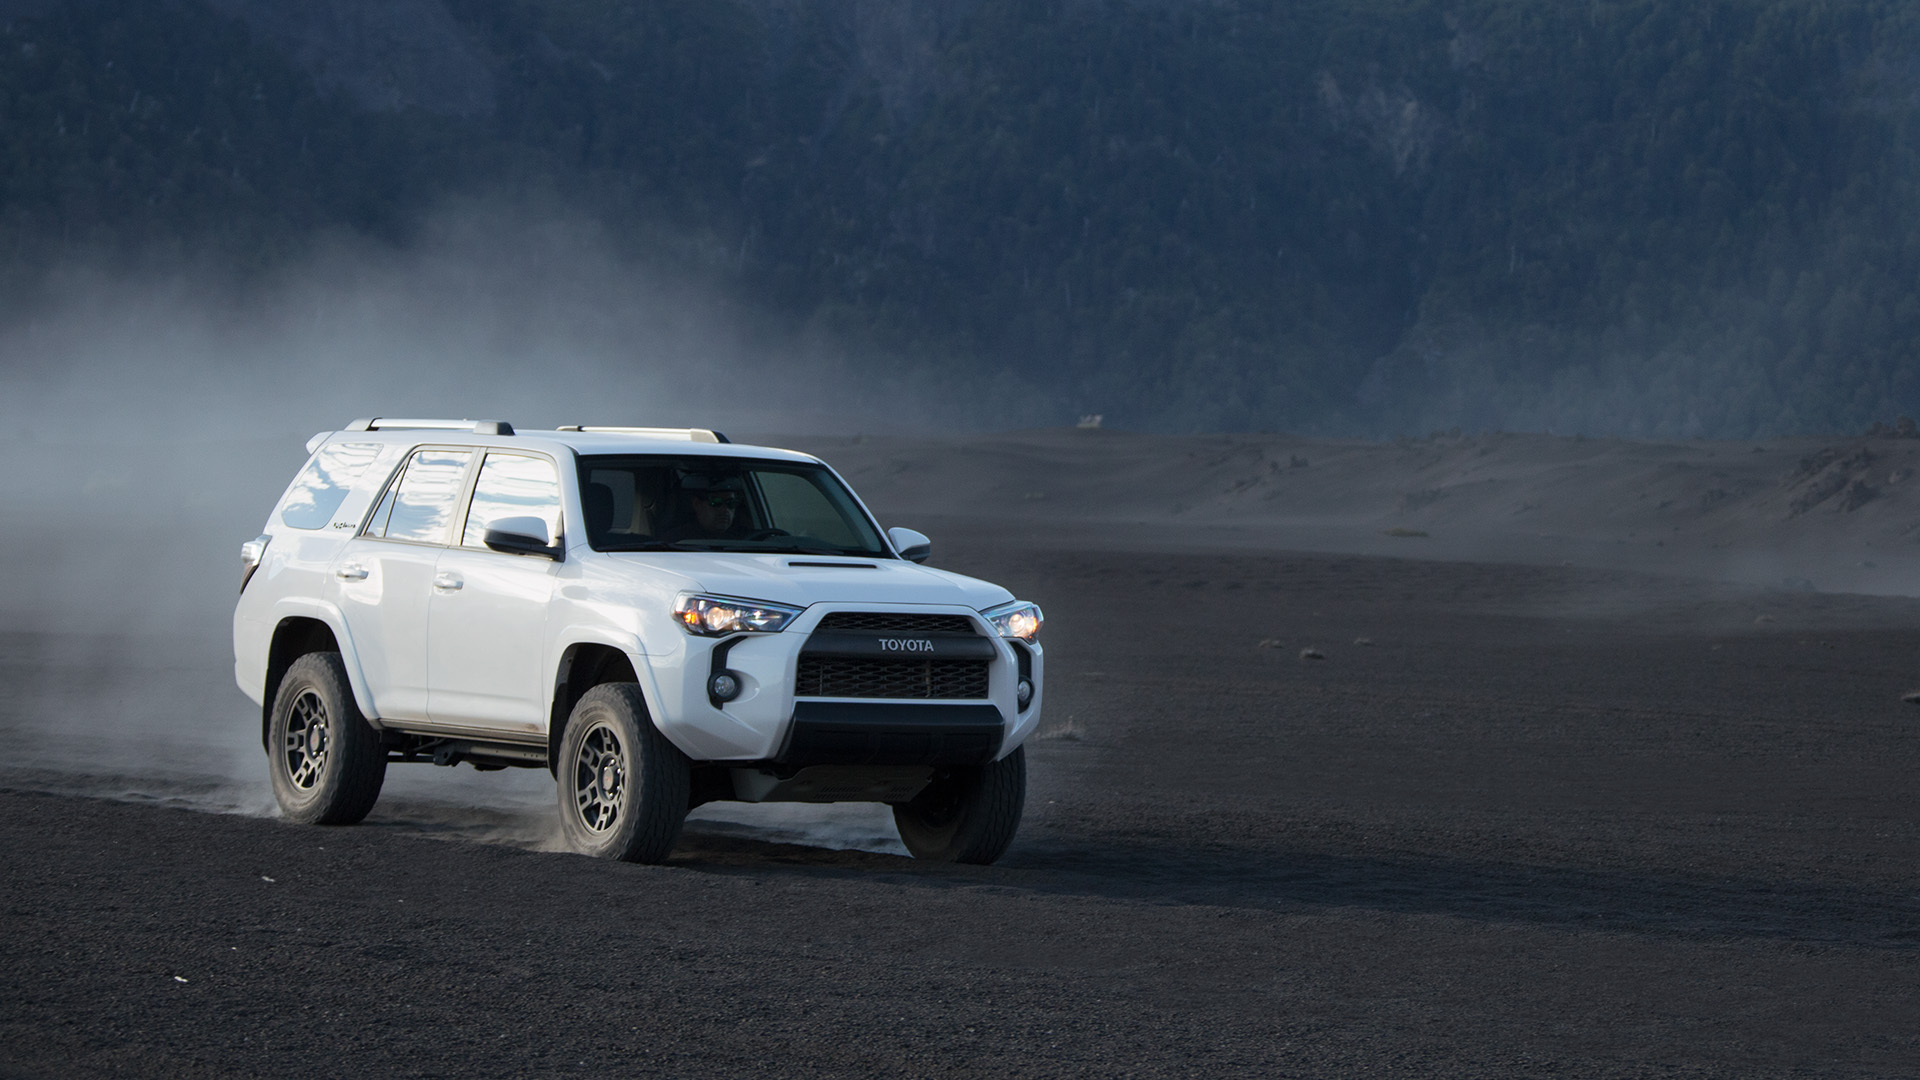 Toyota Trd Wallpapers Top Free Toyota Trd Backgrounds Wallpaperaccess